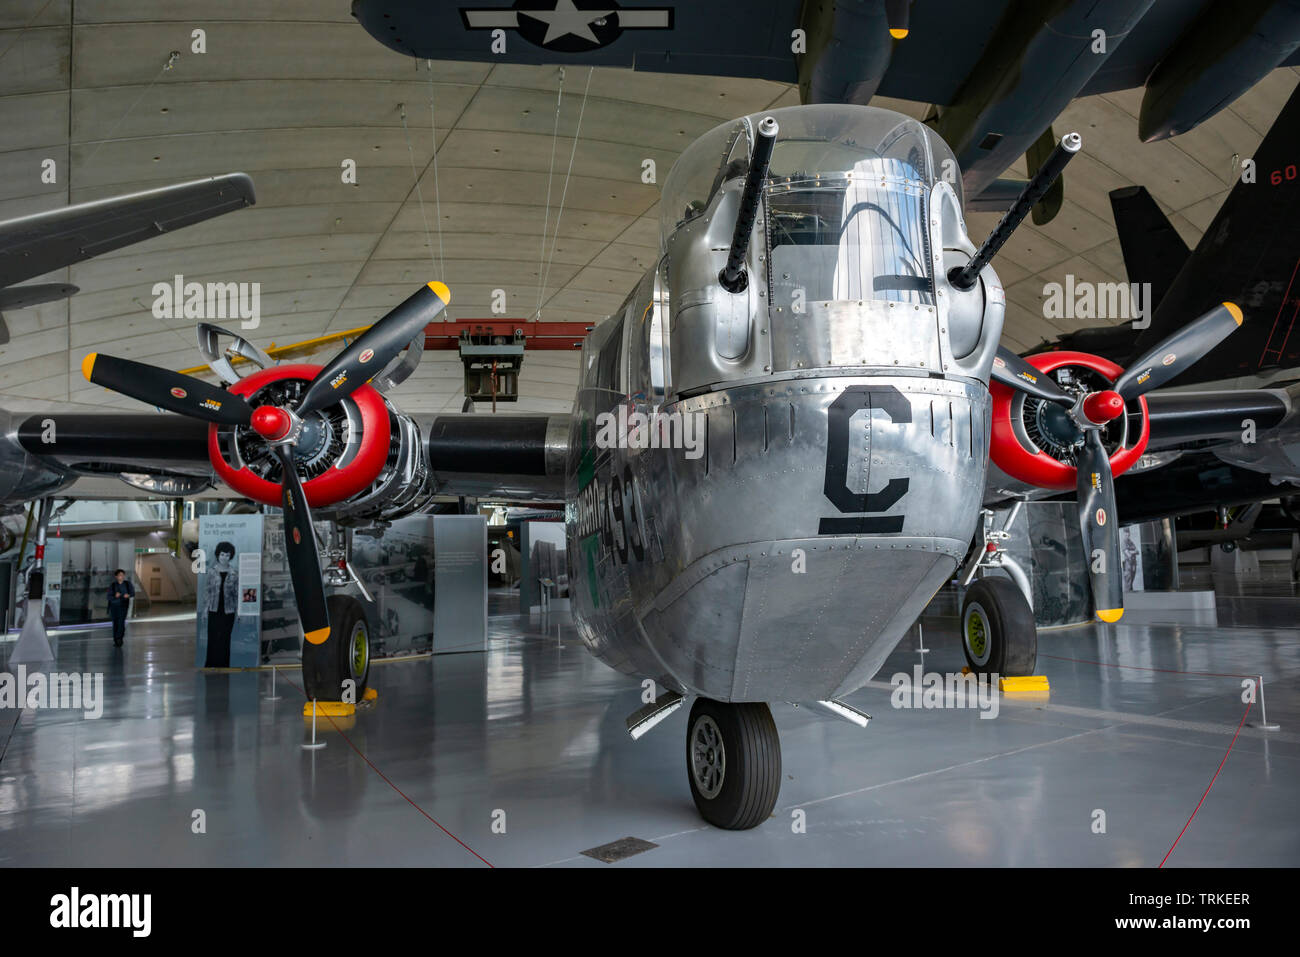 World War Two Consolidated B24 Liberator heavy bomber at the Imperial War Museum, Duxford, Cambridgeshire, UK - Stock Image